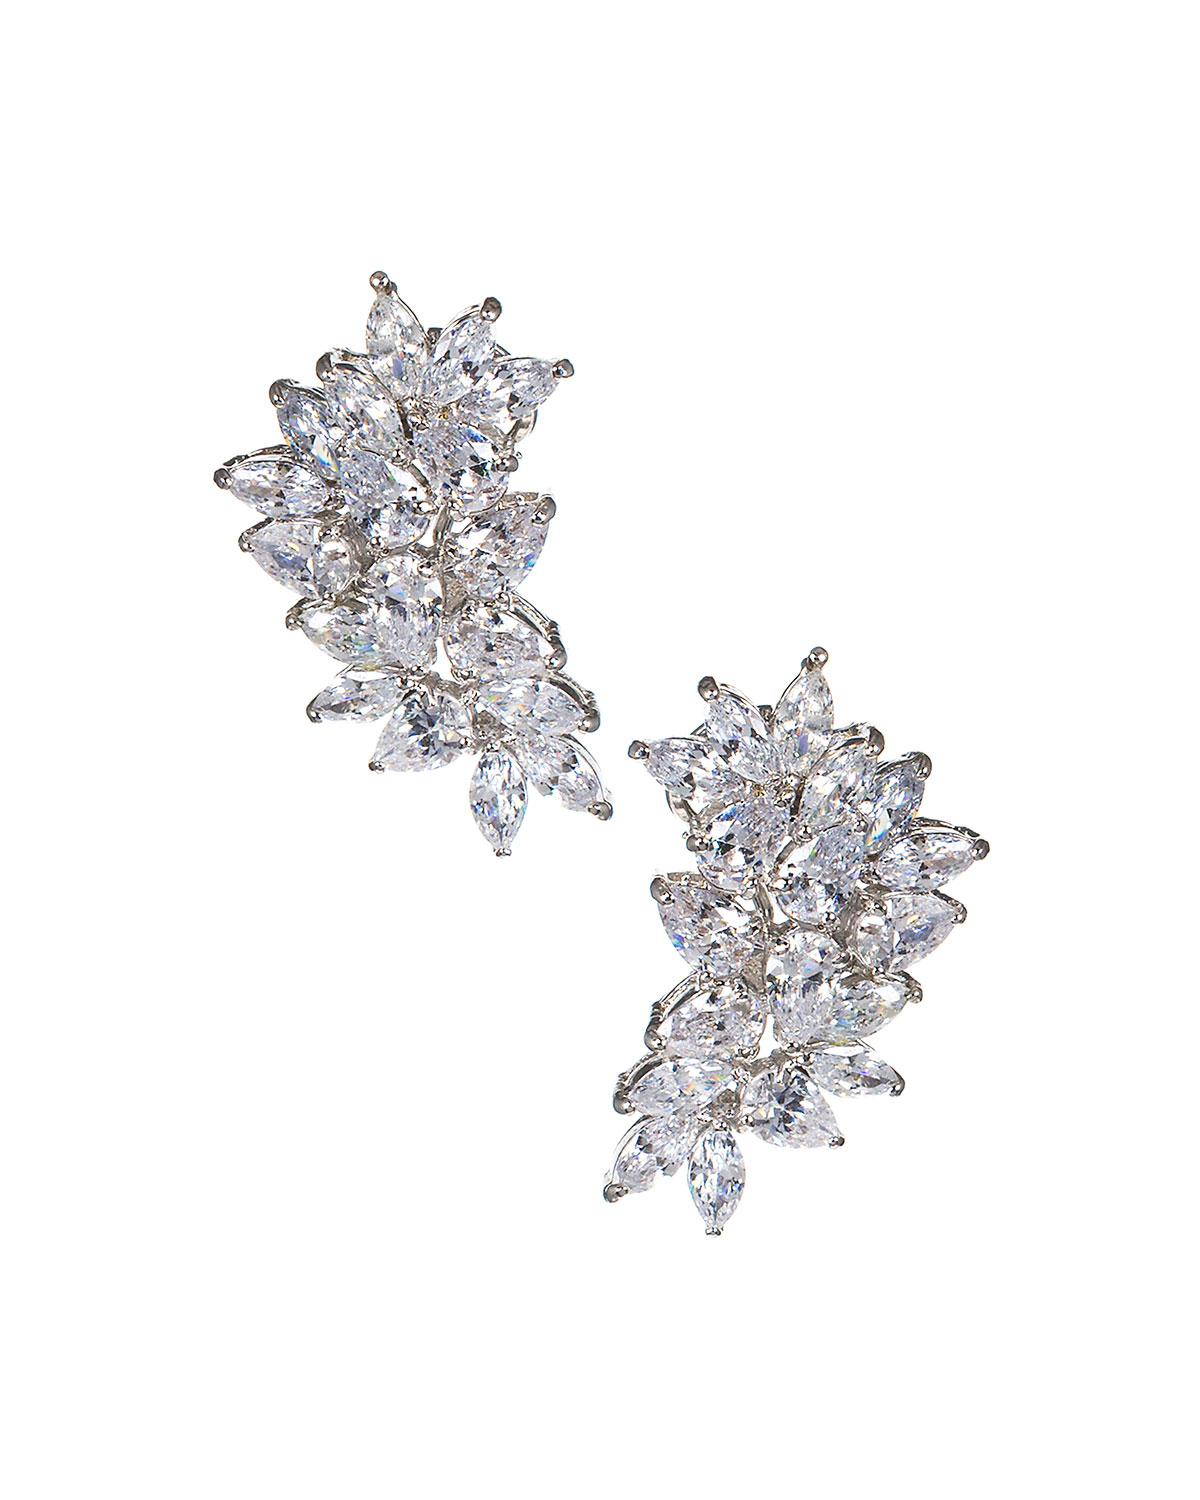 Cubic Zirconia Pear & Marquise Cluster Earrings